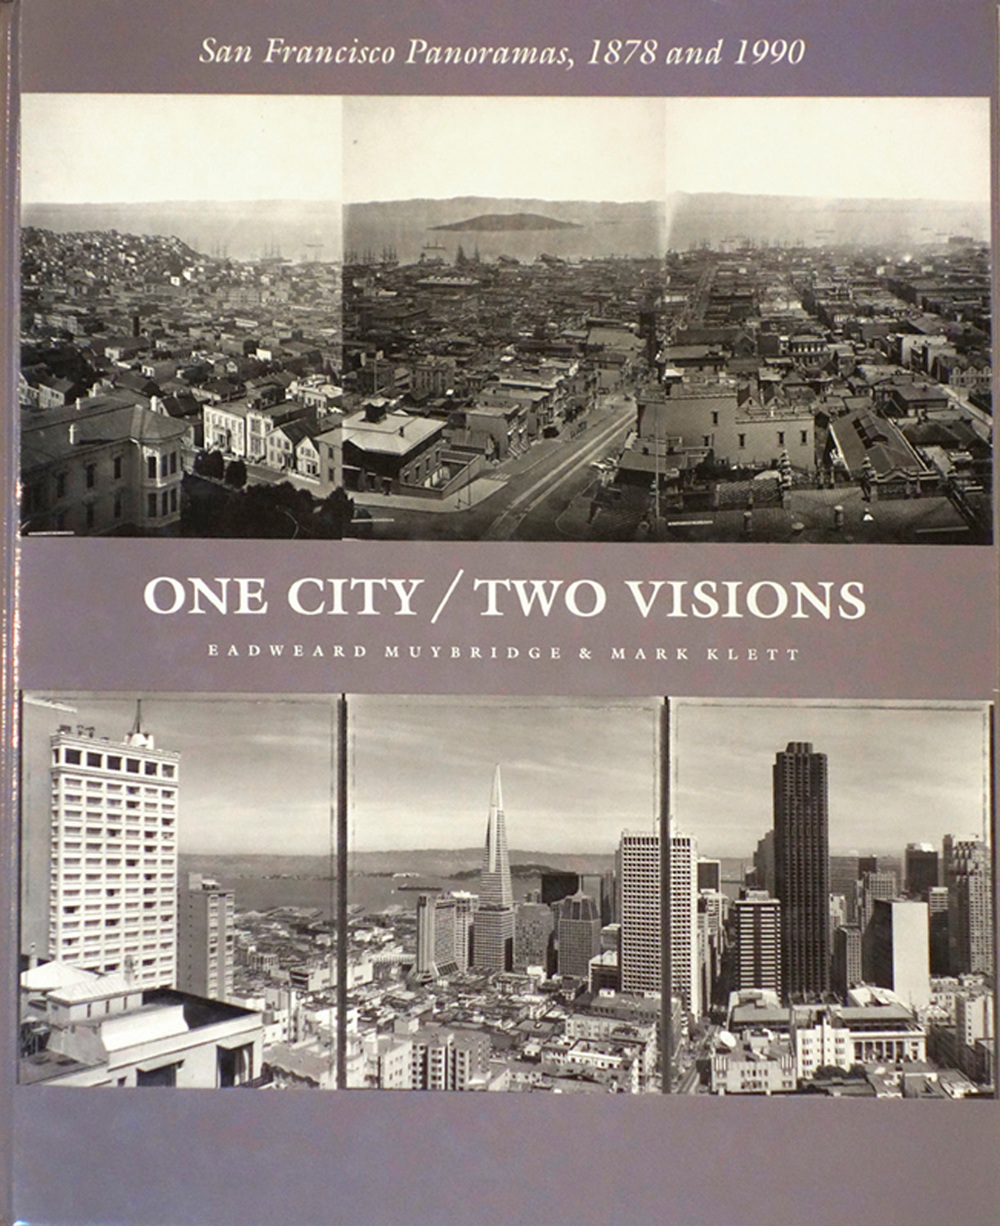 One City/Two Visions, Bedford Arts Publishers 1990